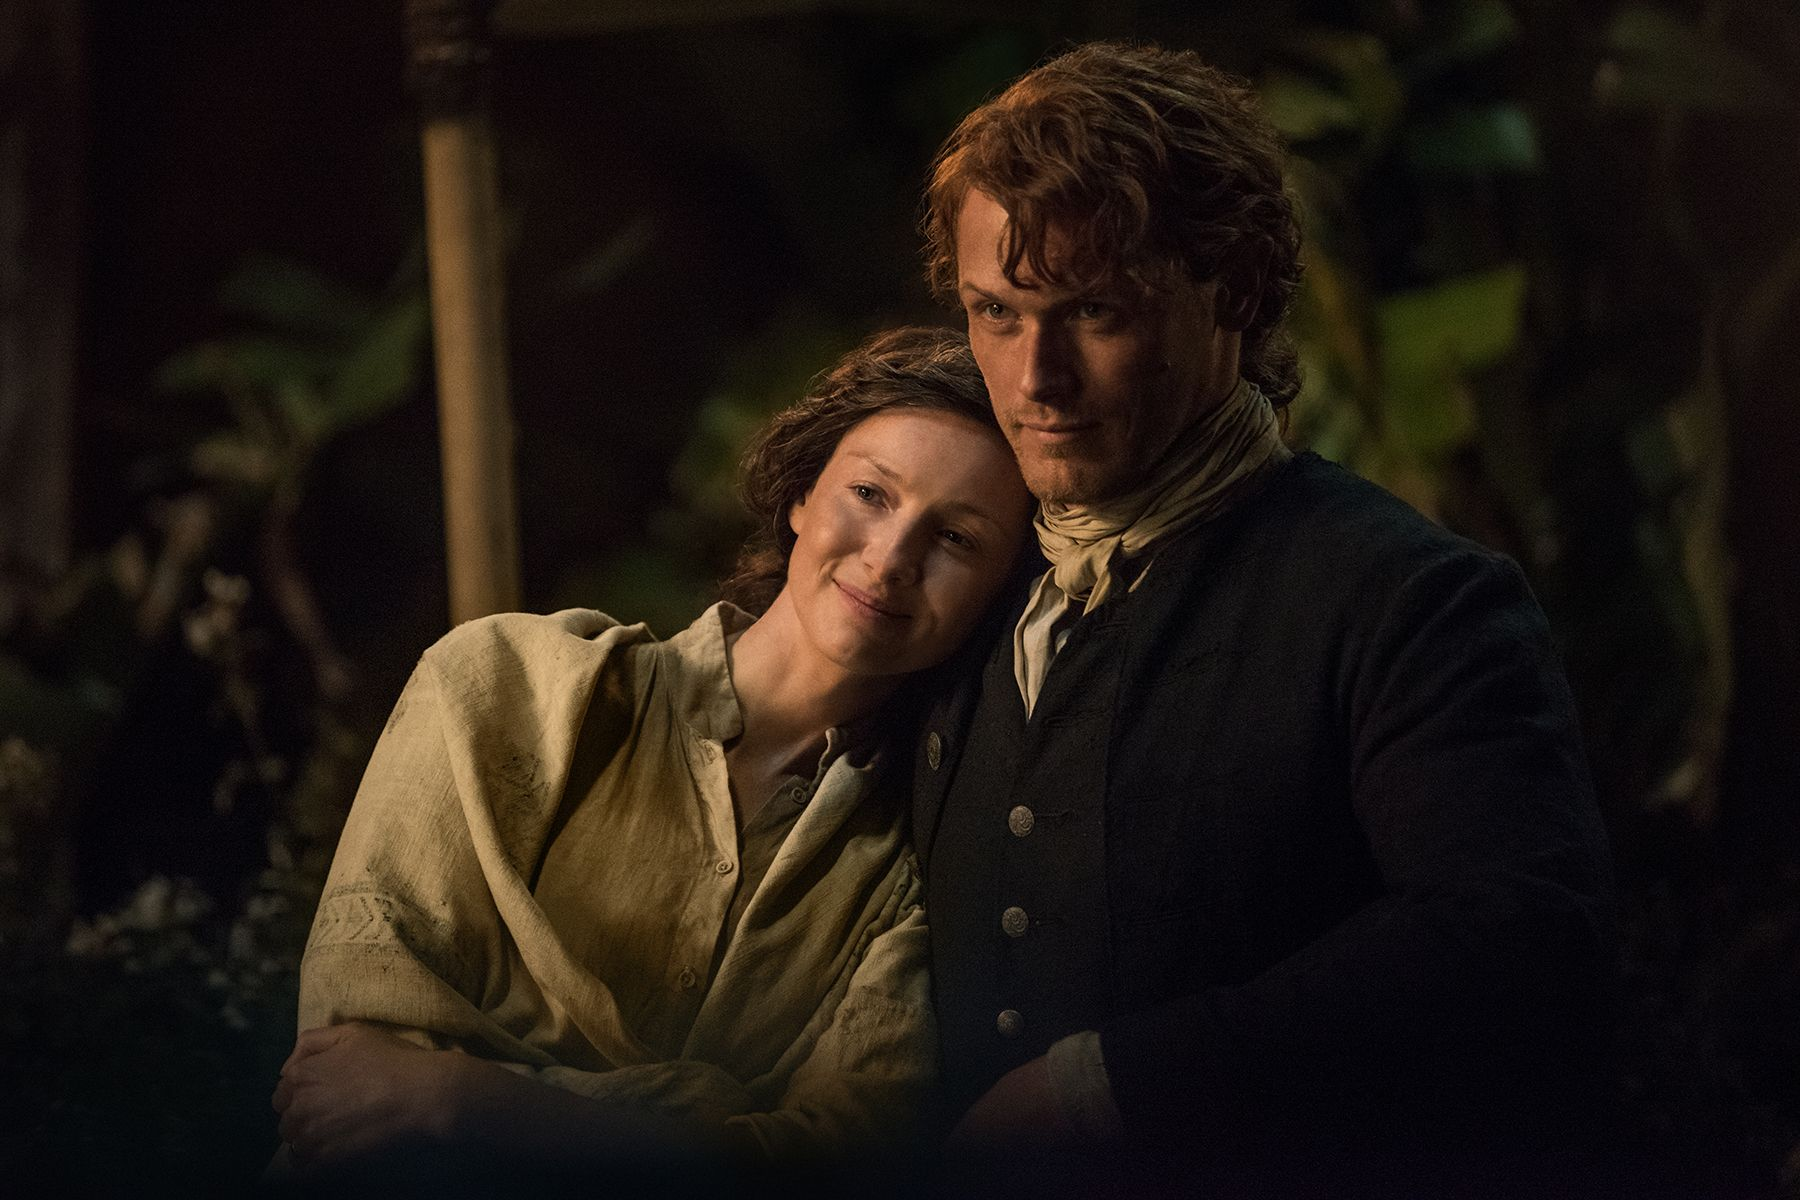 Starz orders two more seasons of 'Outlander'